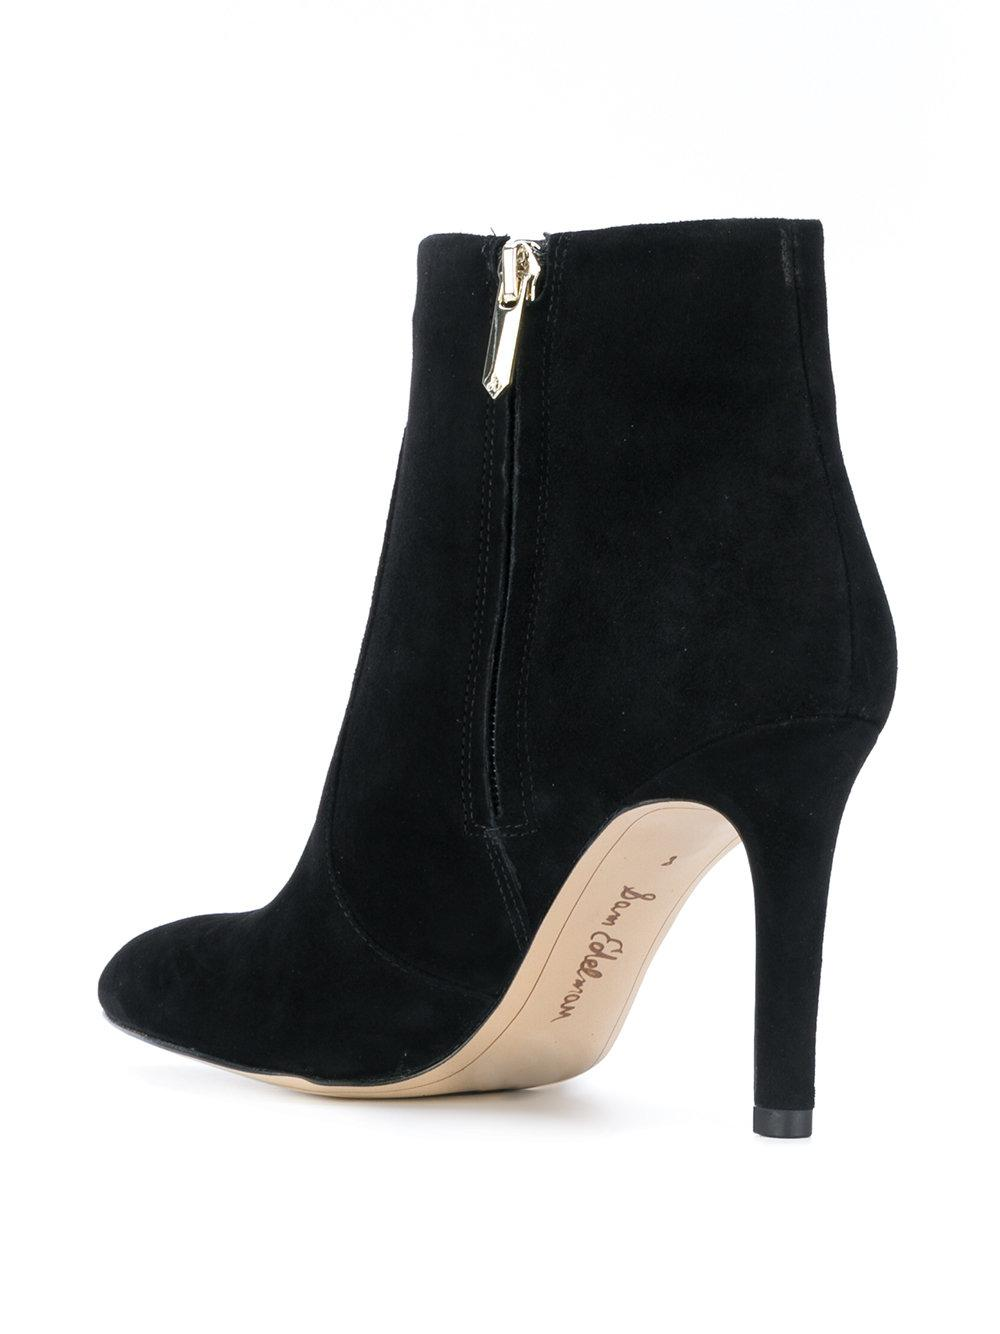 53d6e7c5b27a4f Sam Edelman Olette Ankle Boots in Black - Lyst